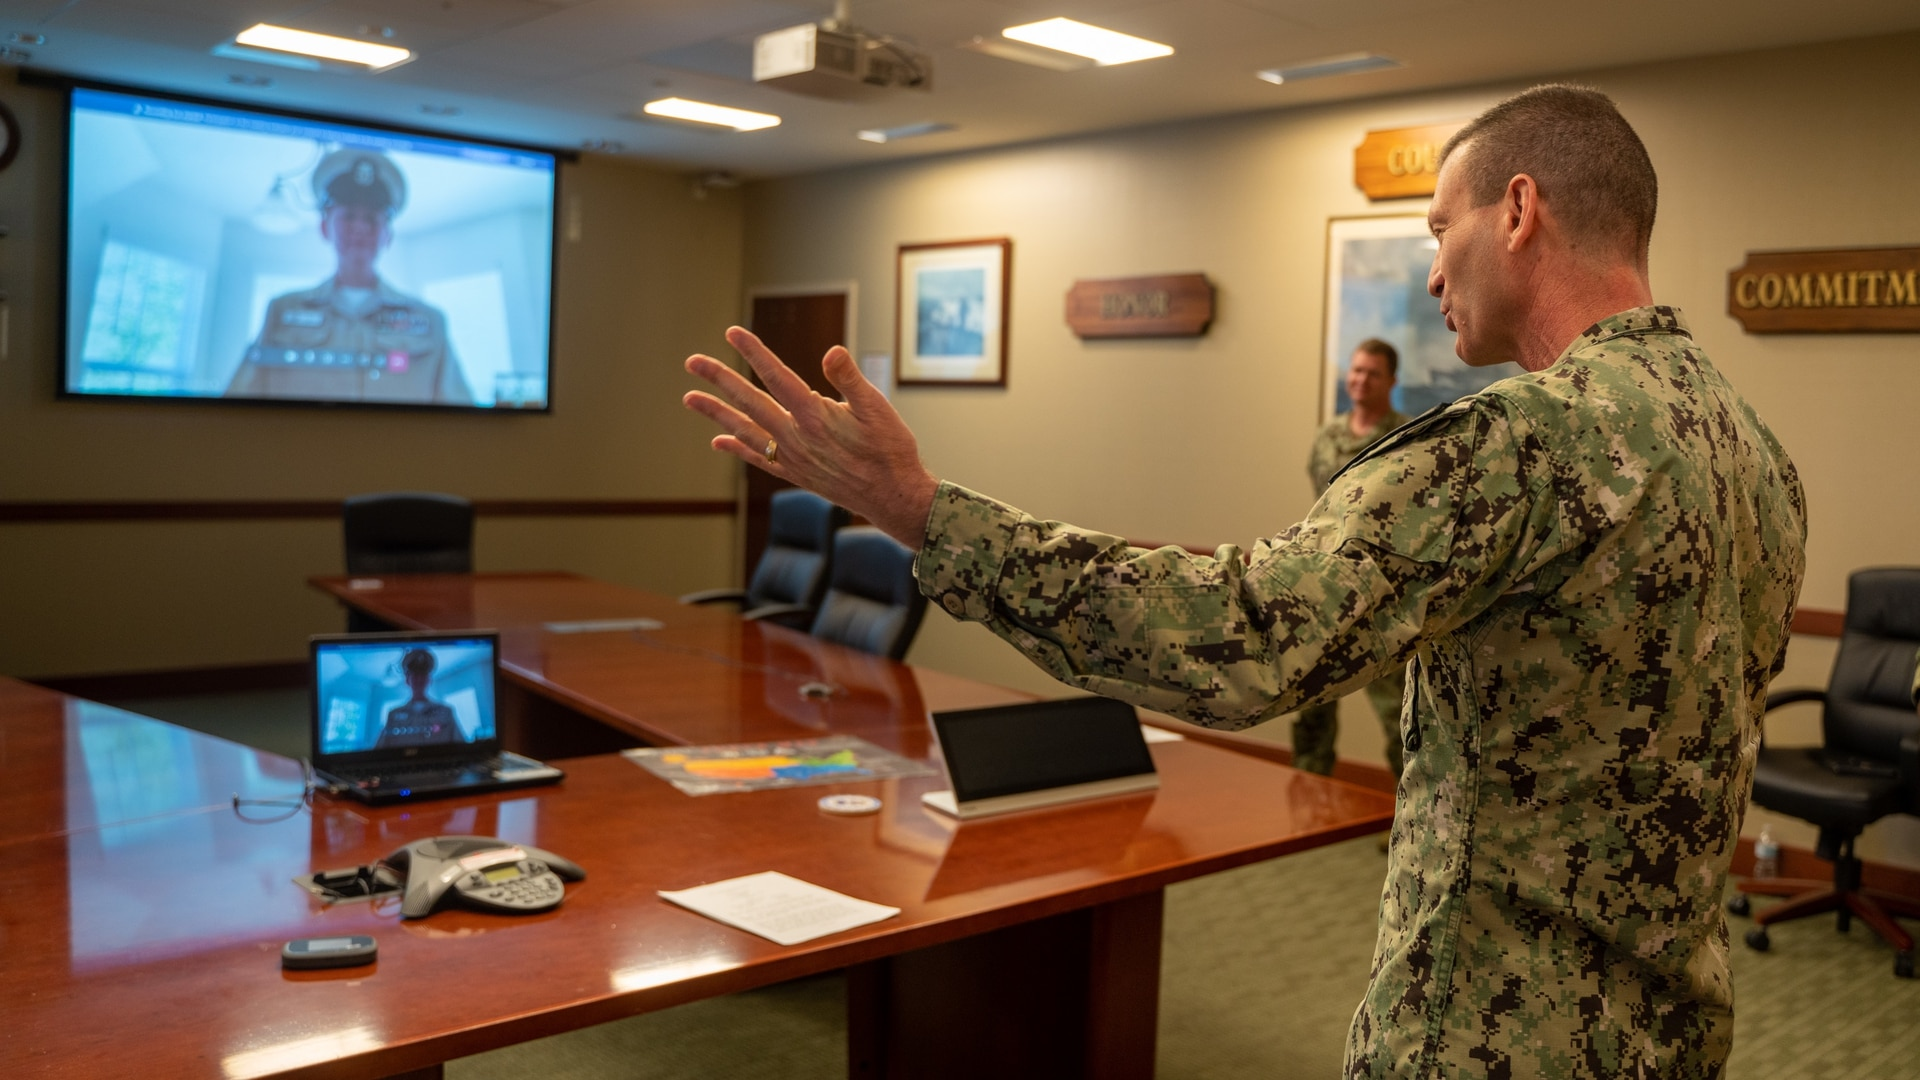 Rear Adm. John Schommer, the head of Navy Reserve Forces Command, congratulates newly frocked senior and master chiefs using remote work software that the Pentagon fast-tracked during the coronavirus pandemic. (Petty Officer 1st Class Arthurgwain Marquez/U.S. Navy)